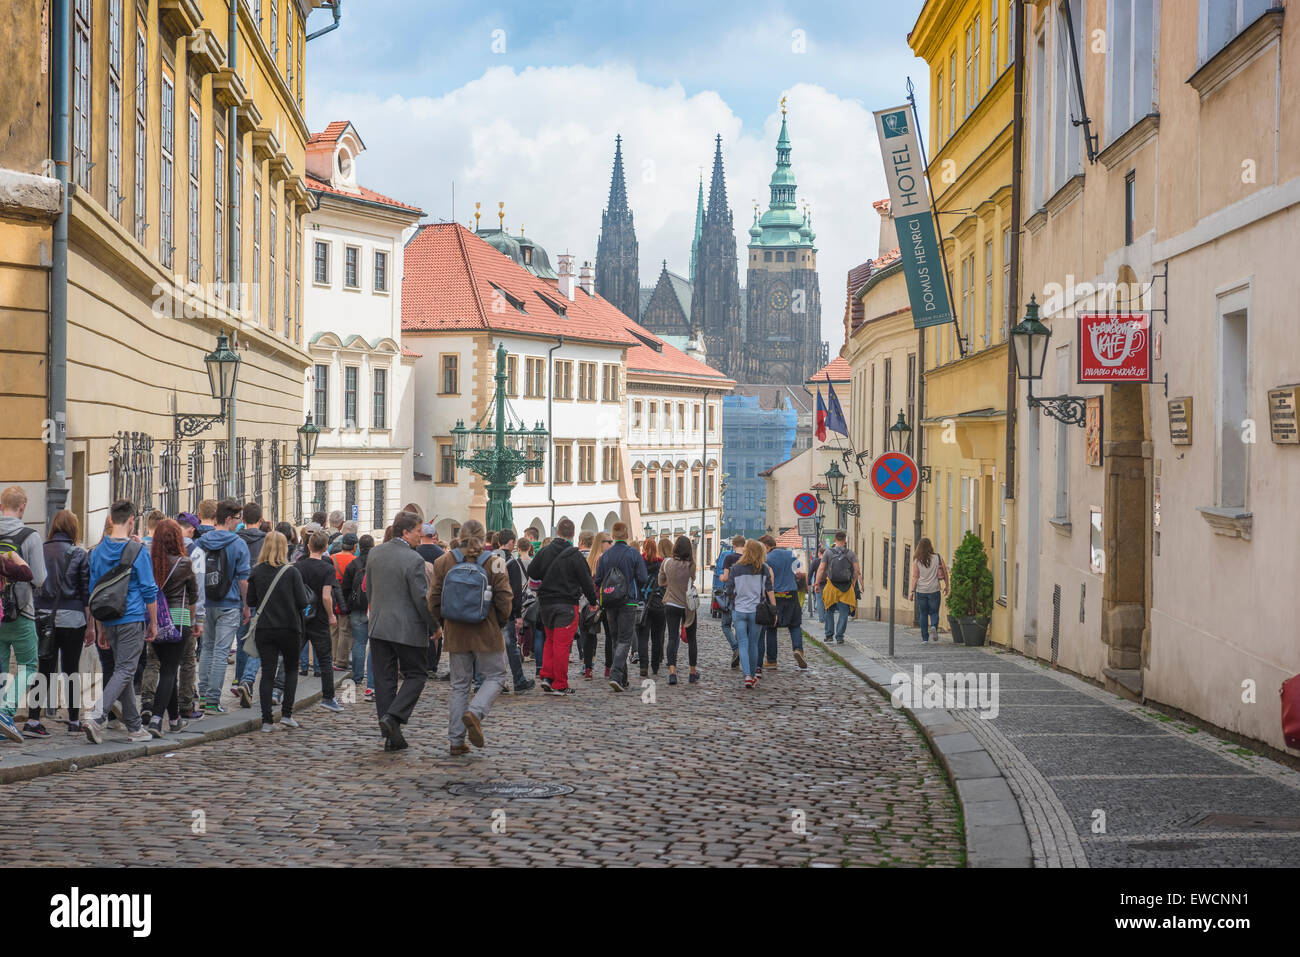 Prague Hradcany, along Uvoz in the Hradcany district of Prague a group of tourists head for the landmark St. Vitus Cathedral, Czech Republic. Stock Photo